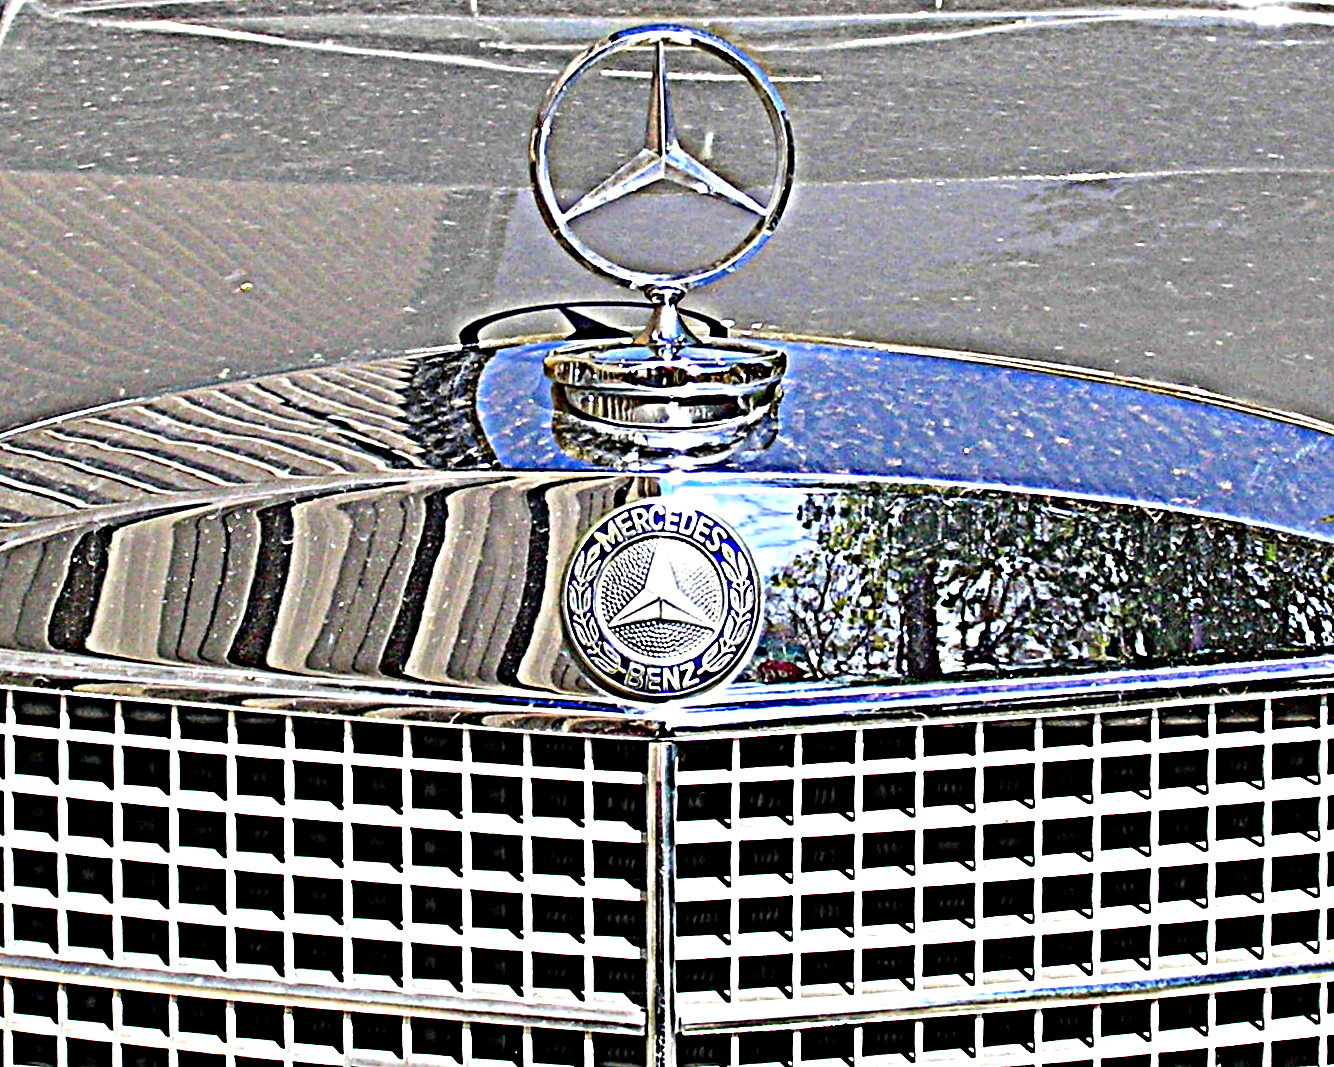 Mercedes benz 400 class questions how much does it cost for How much do mercedes benz cost